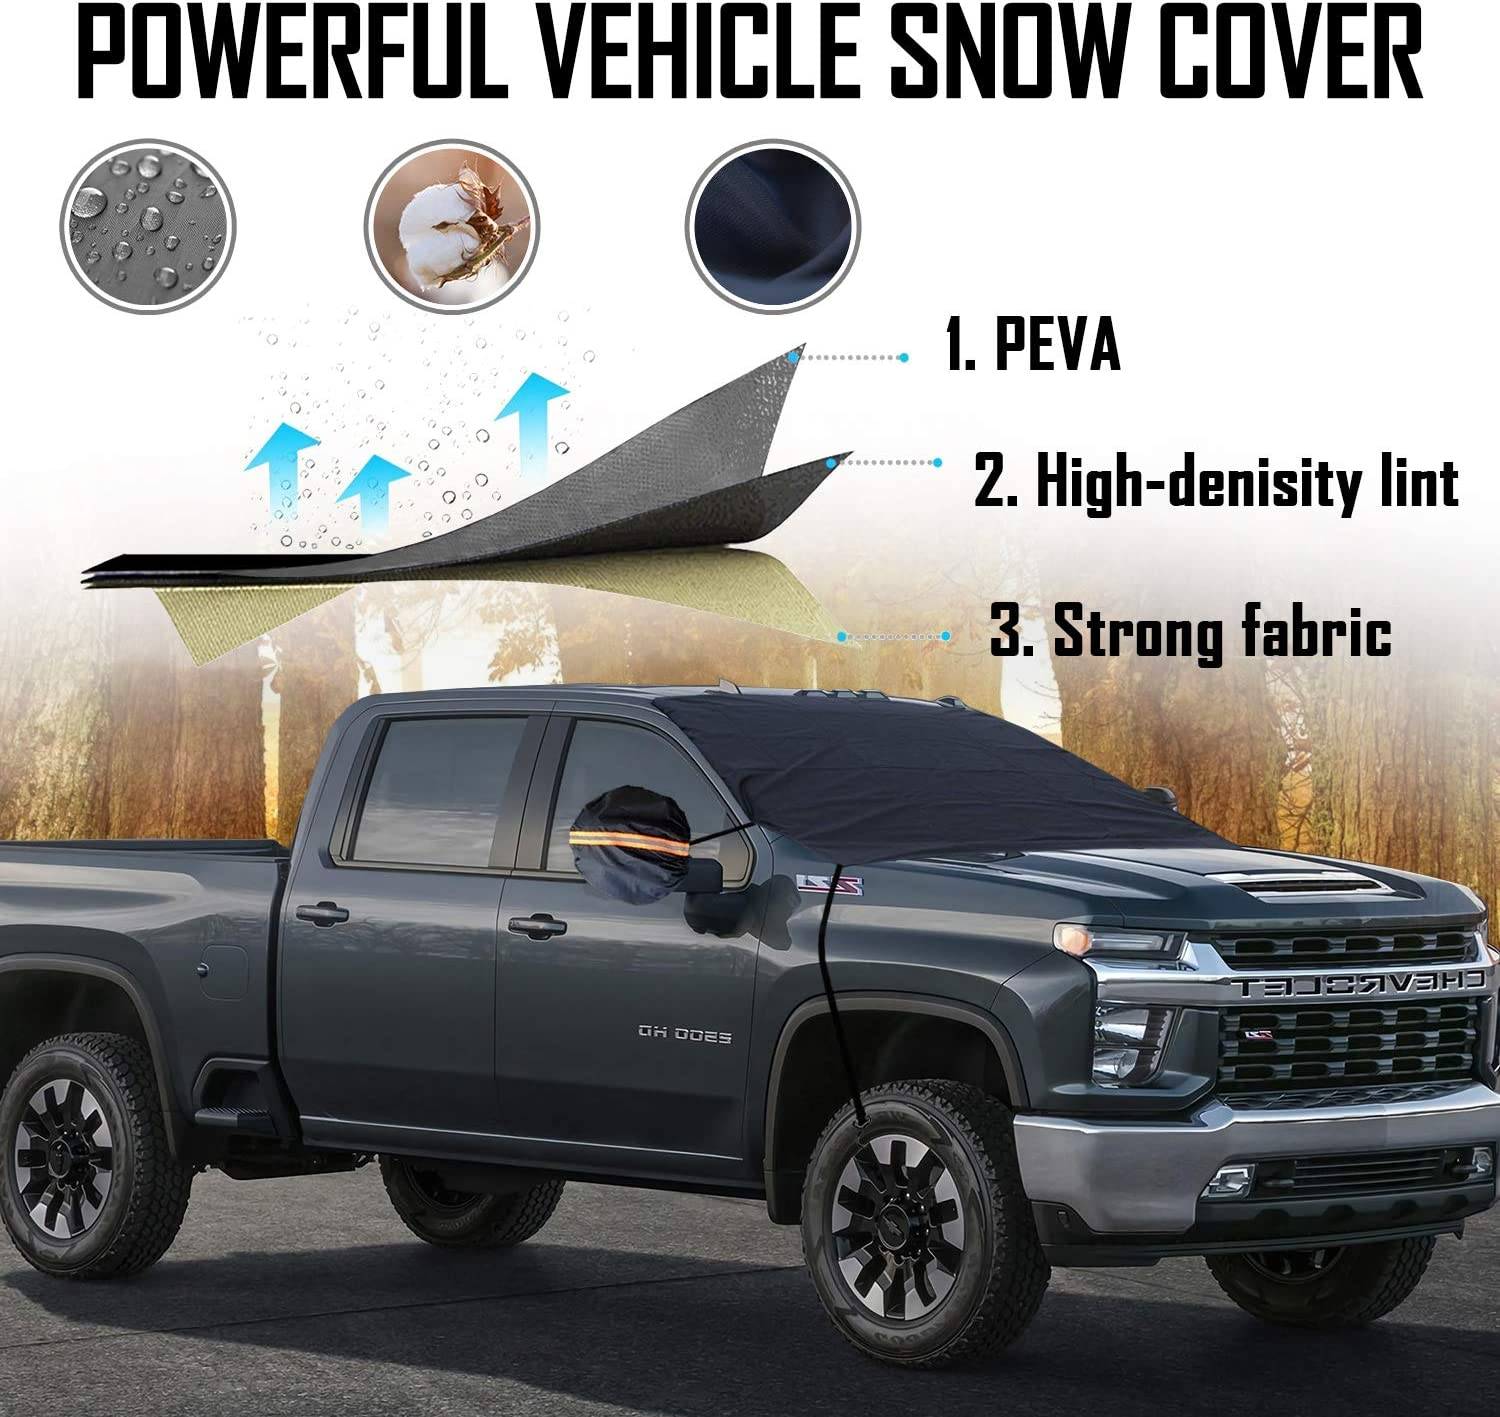 4 Layers Material Protection Large Size 86x 50 Hooks Design No Scratch Paint Car Windshield Snow Cover with Mirror Snow Covers All Season Protection Fits for Most Vehicles